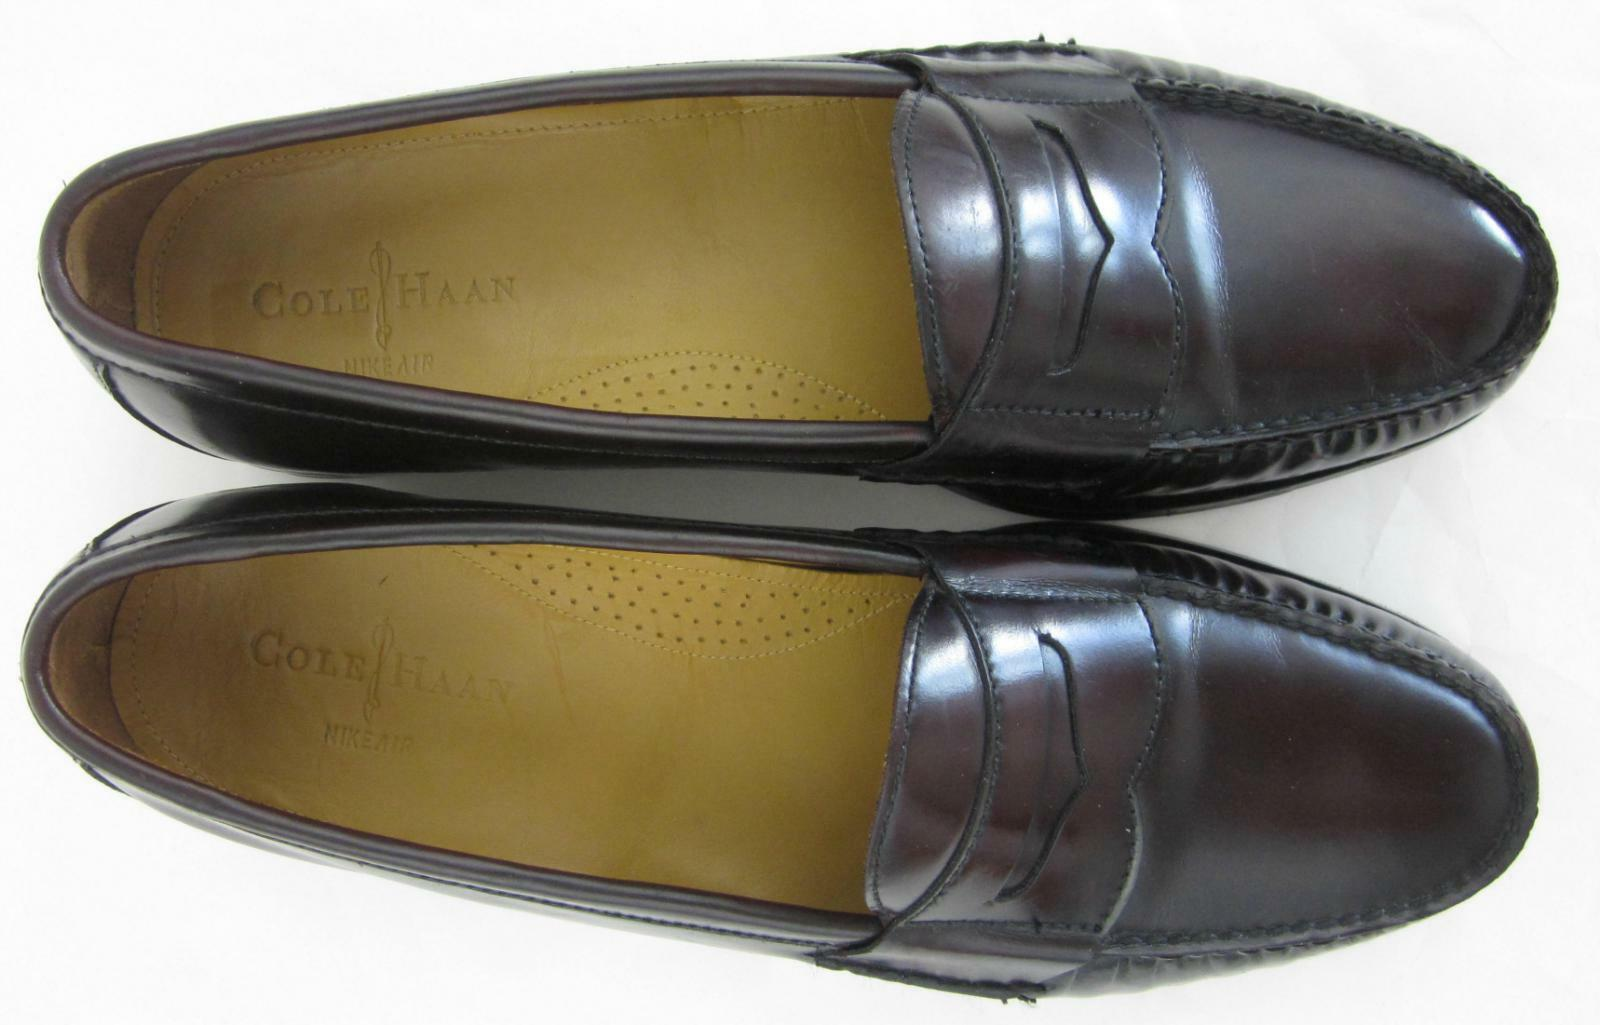 Cole Haan Air Air Air Pinch Penny Loafers Mahogany Leather US 13M 986743